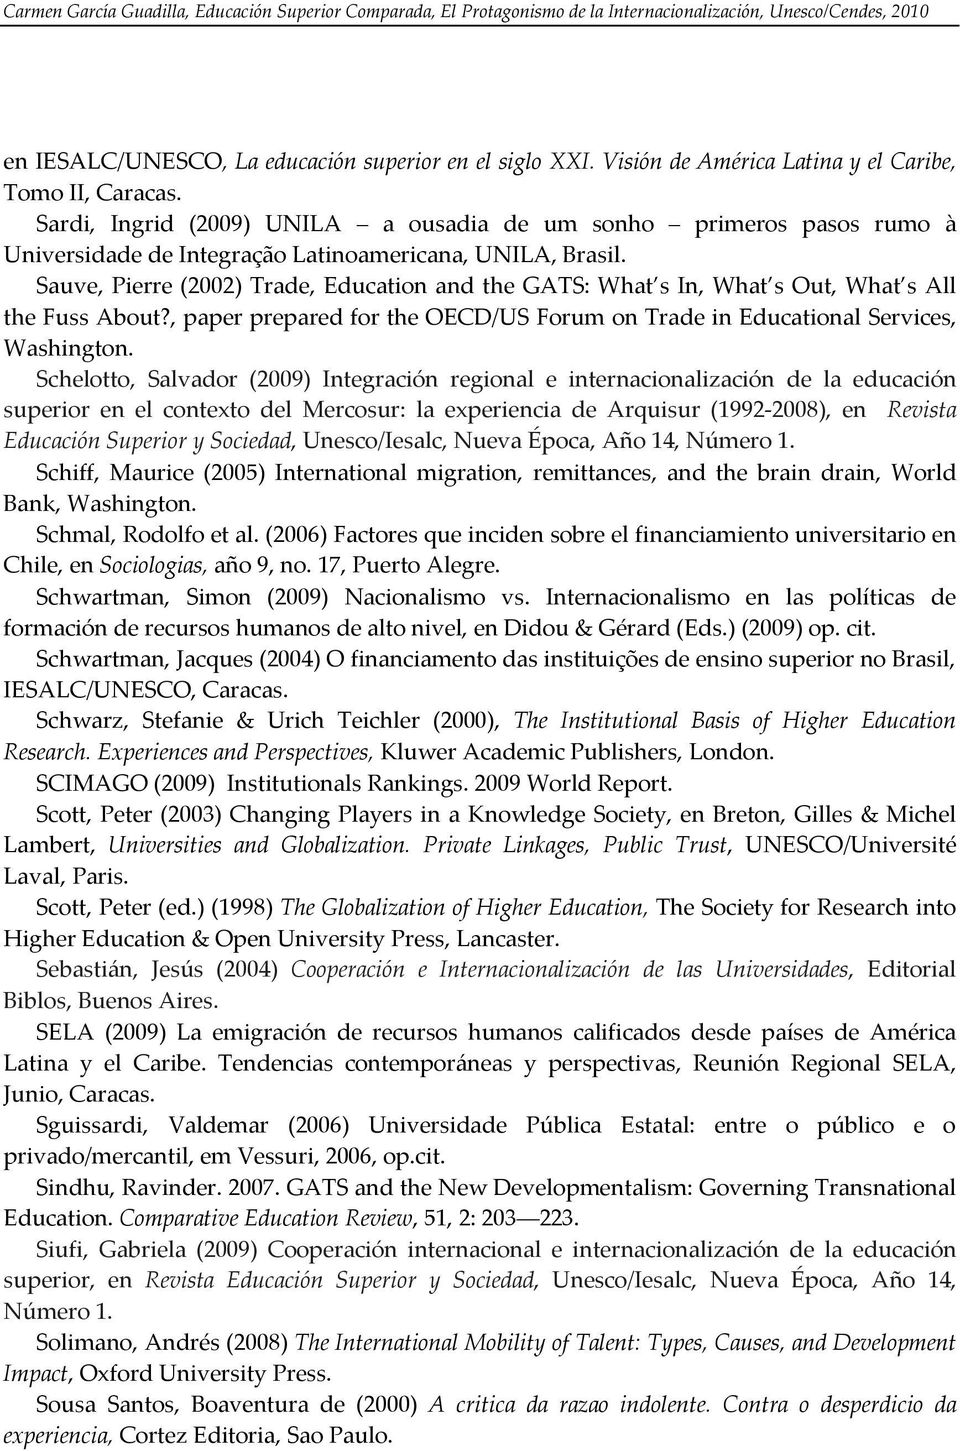 Sauve, Pierre (2002) Trade, Education and the GATS: What s In, What s Out, What s All the Fuss About?, paper prepared for the OECD/US Forum on Trade in Educational Services, Washington.